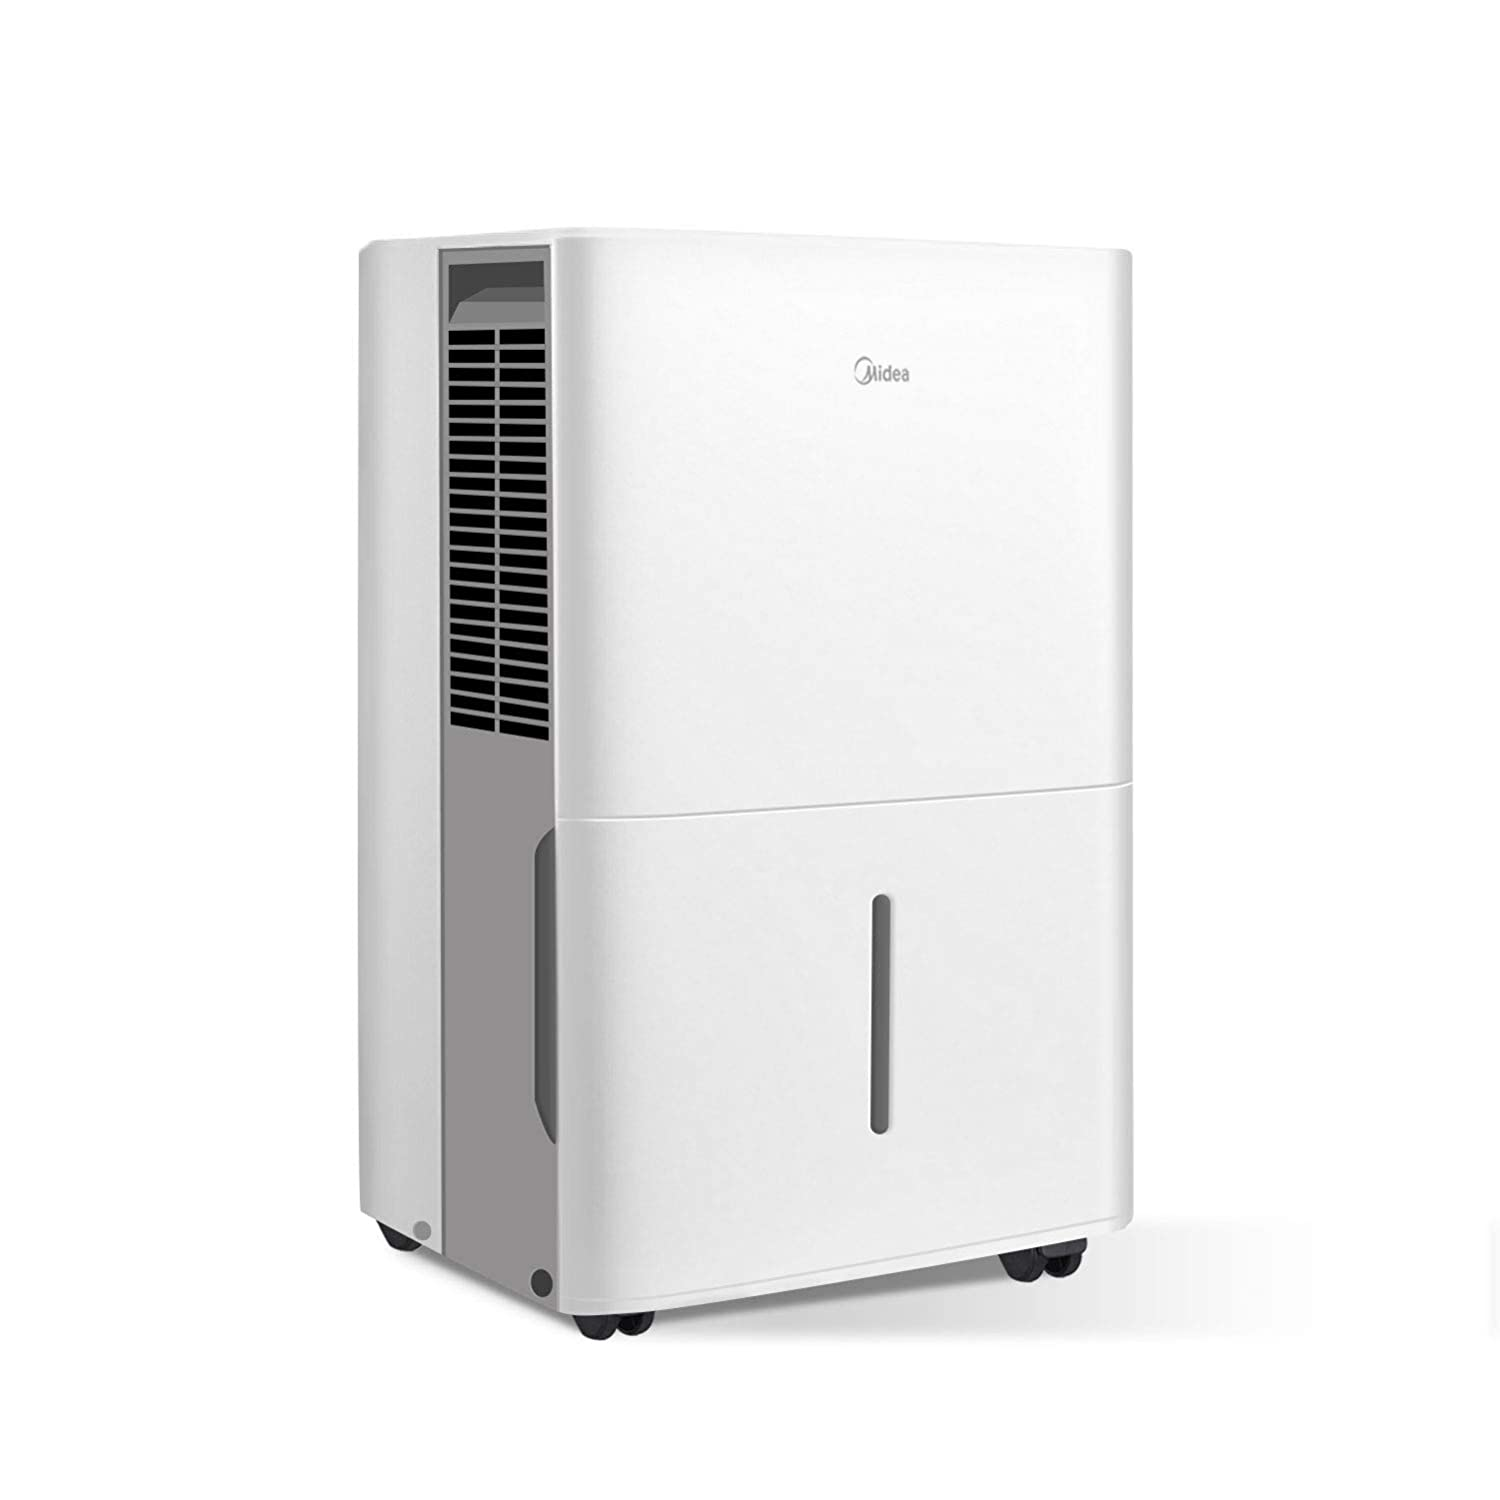 MIDEA MAD30C1YWS Portable Dehumidifier 30 Pint with Reusable Air Filter, Ideal for basements, Bedroom, Bathroom, Pint (20 Pint New DOE), white